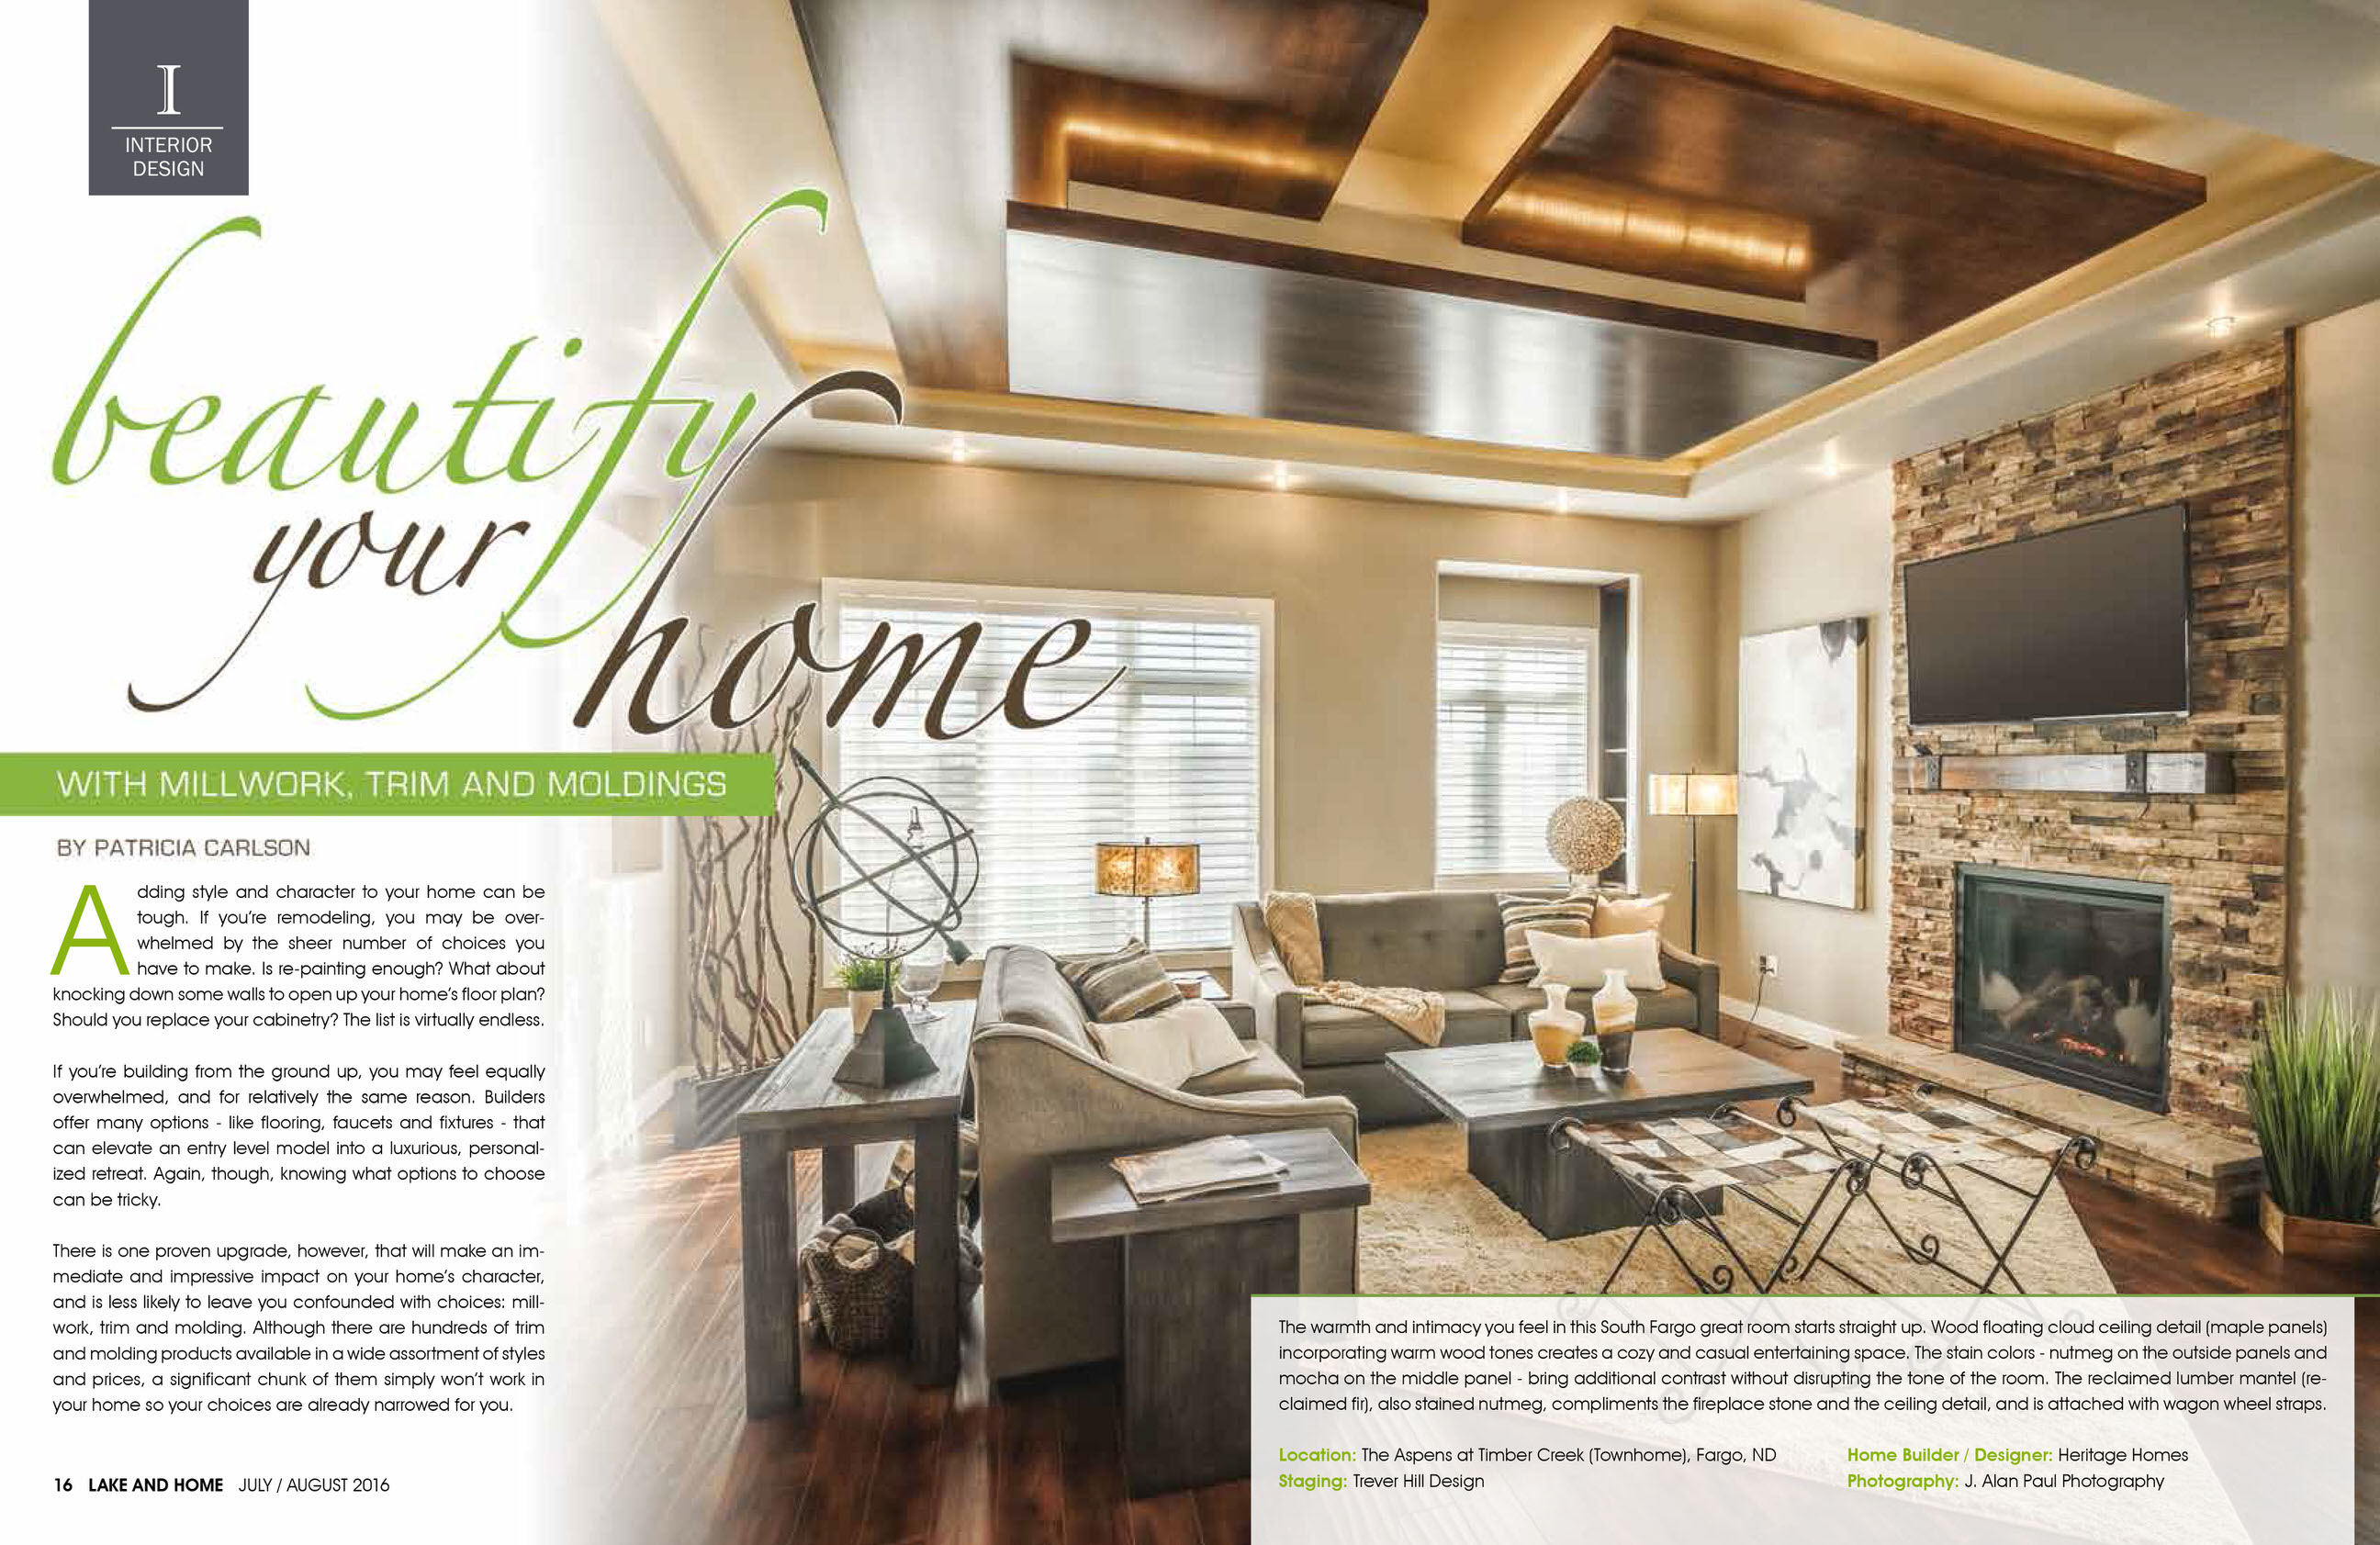 """Beautify Your Home with Millwork, Trim and Moldings"" – Lake & Home Magazine Feature"